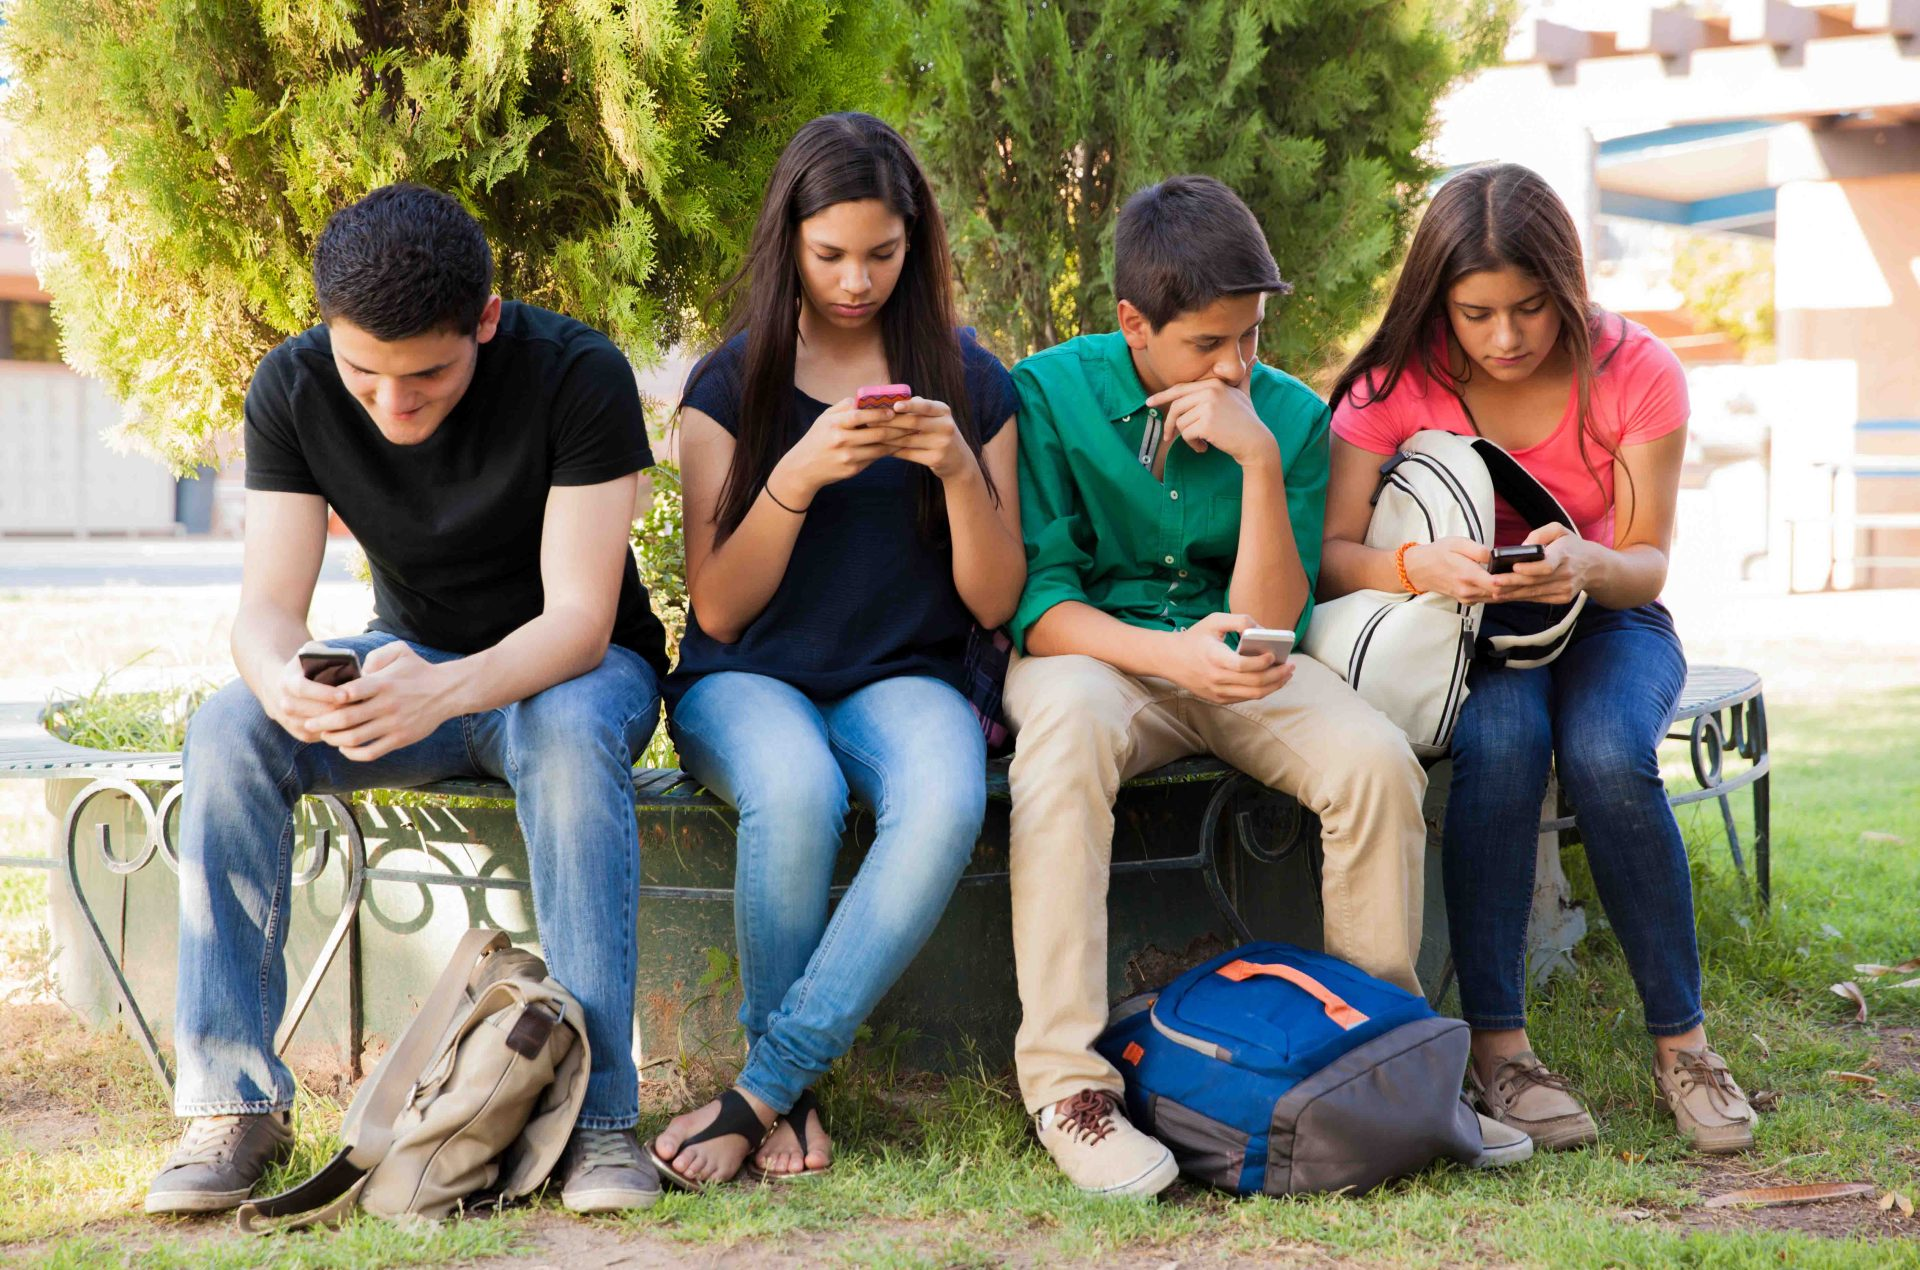 A group of teenagers hanging out and using the Mydoh money management app